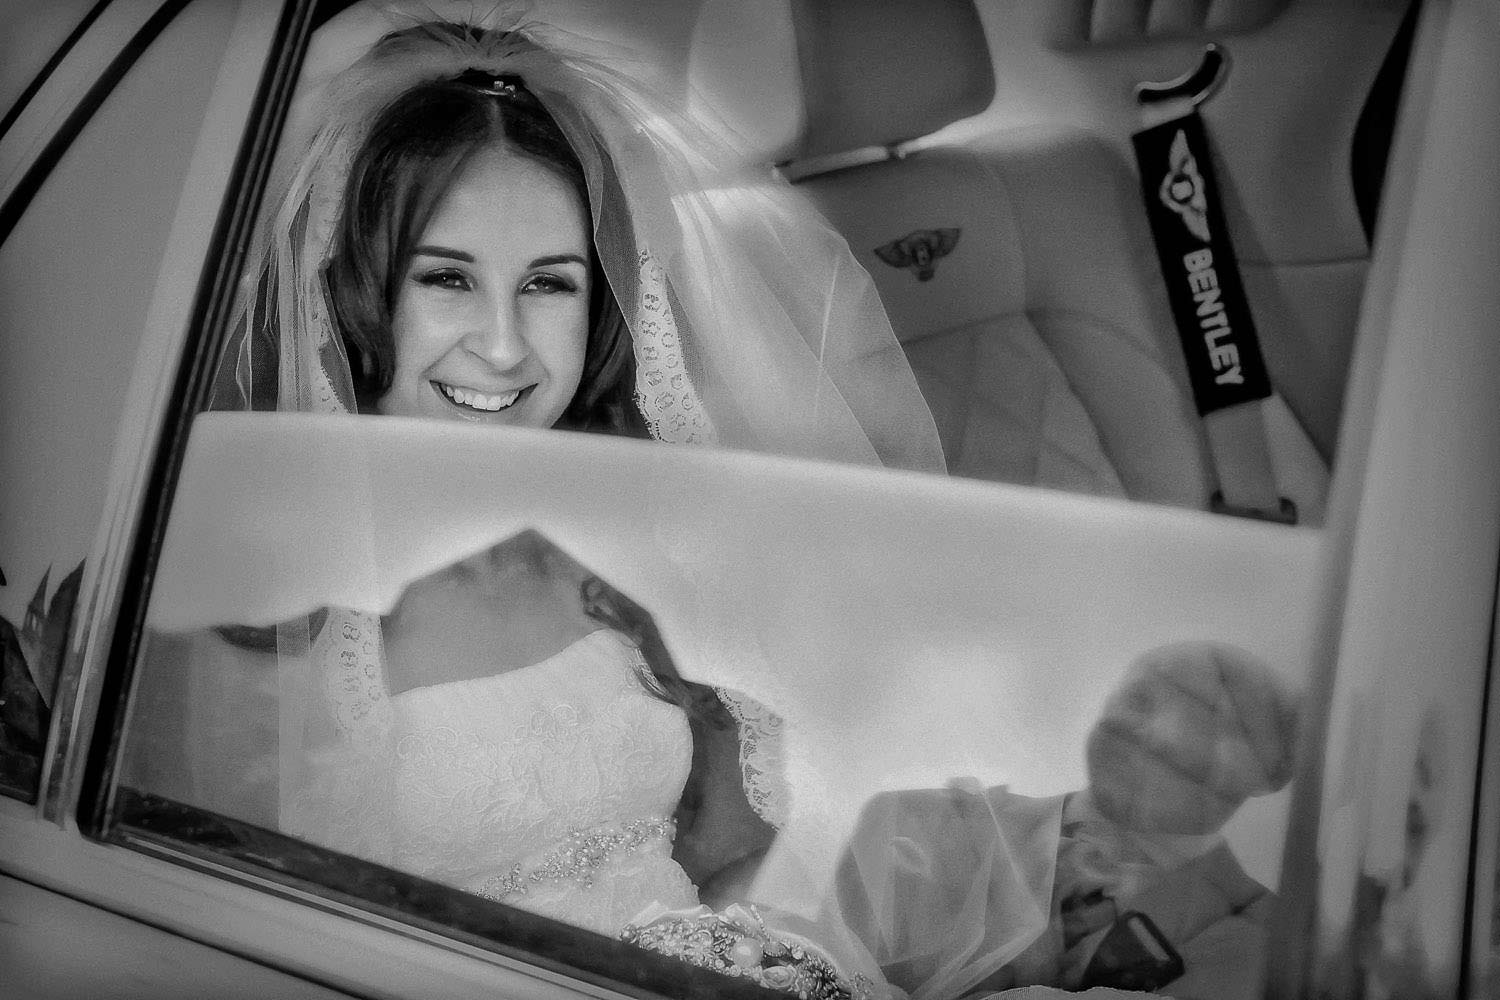 Bride looking out of car Bentley wedding car window